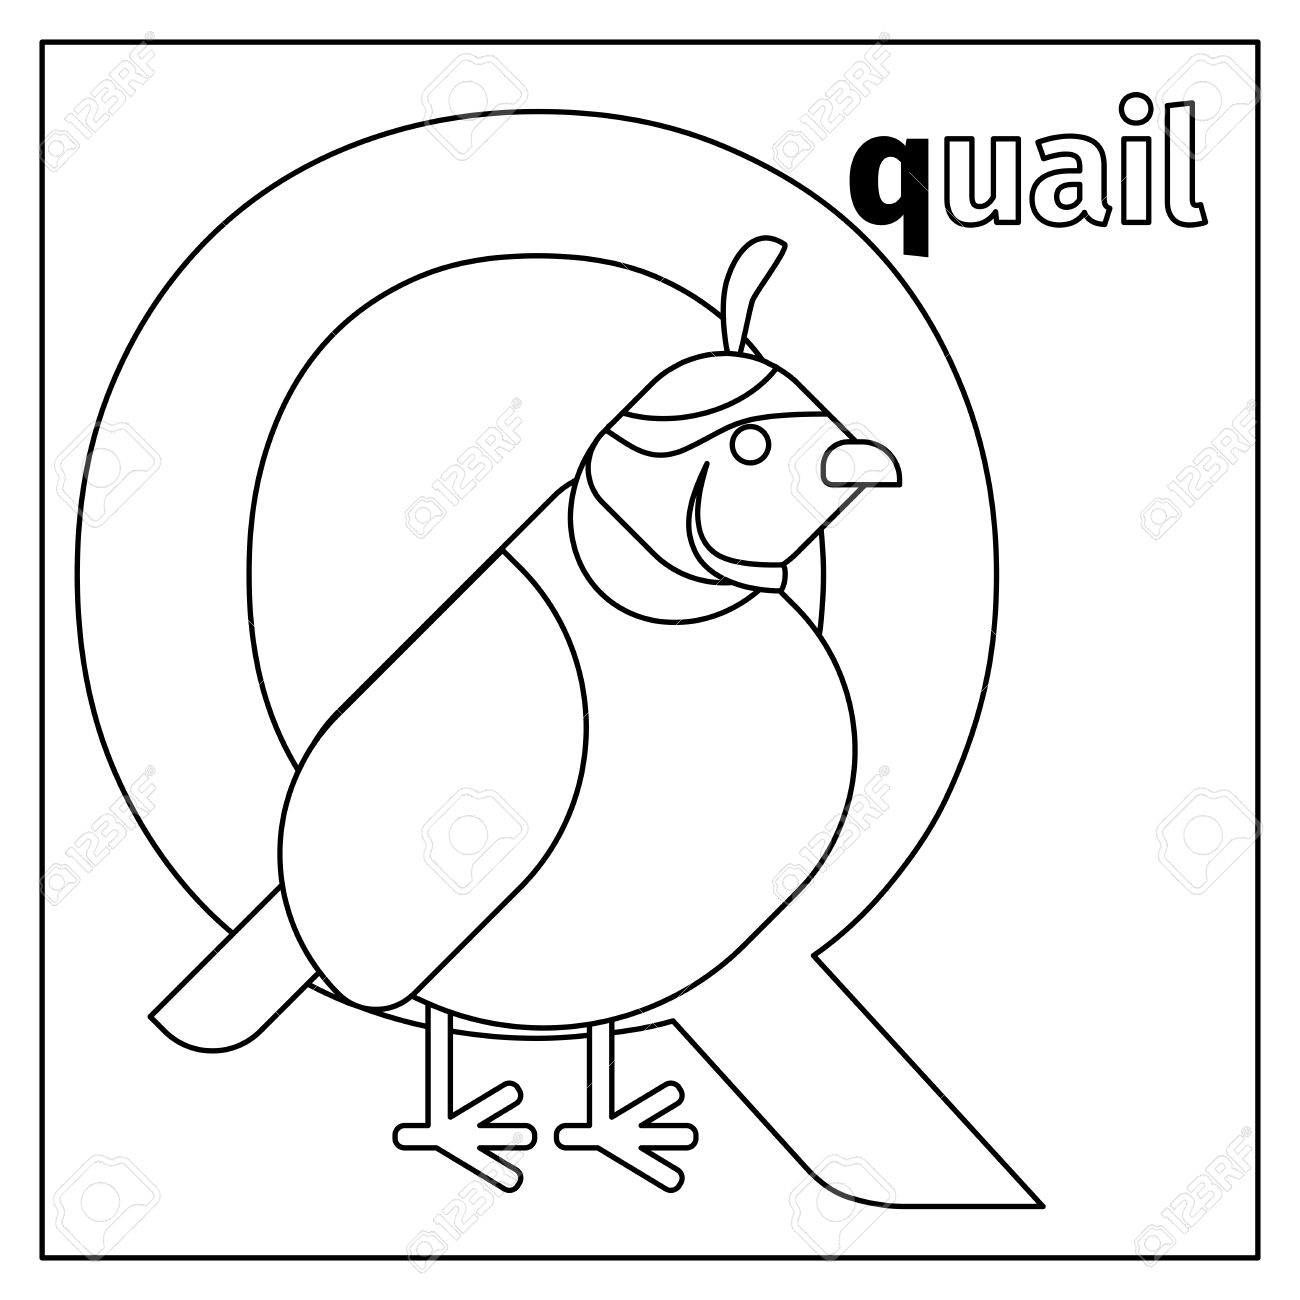 Coloring Page Or Card For Kids With English Animals Zoo Alphabet Quail Letter Q